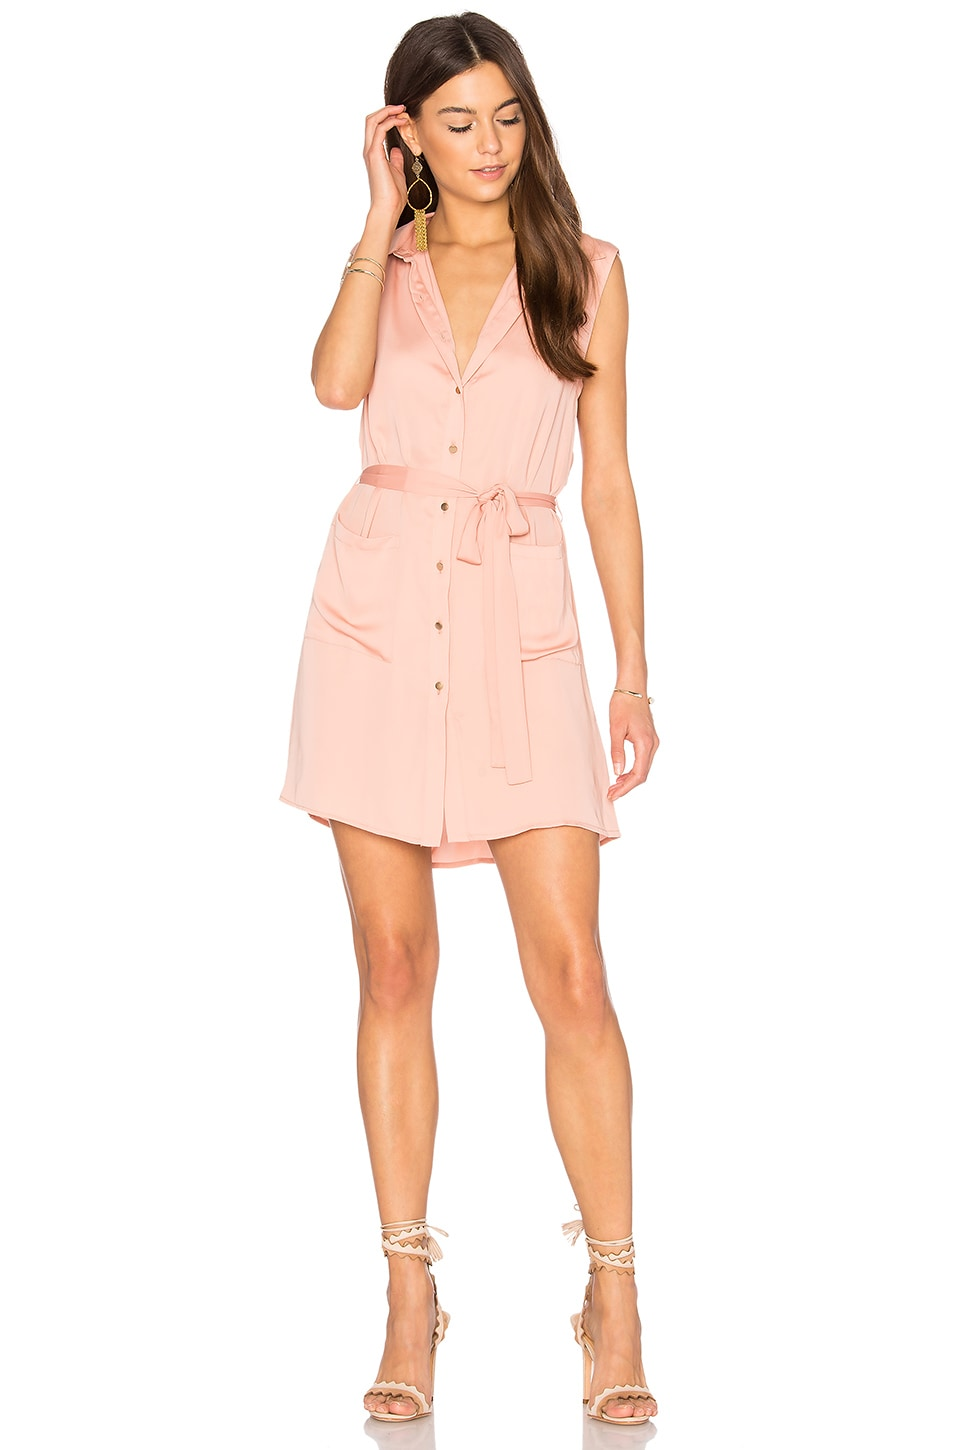 The Sleeveless Shirt Dress by L'Academie